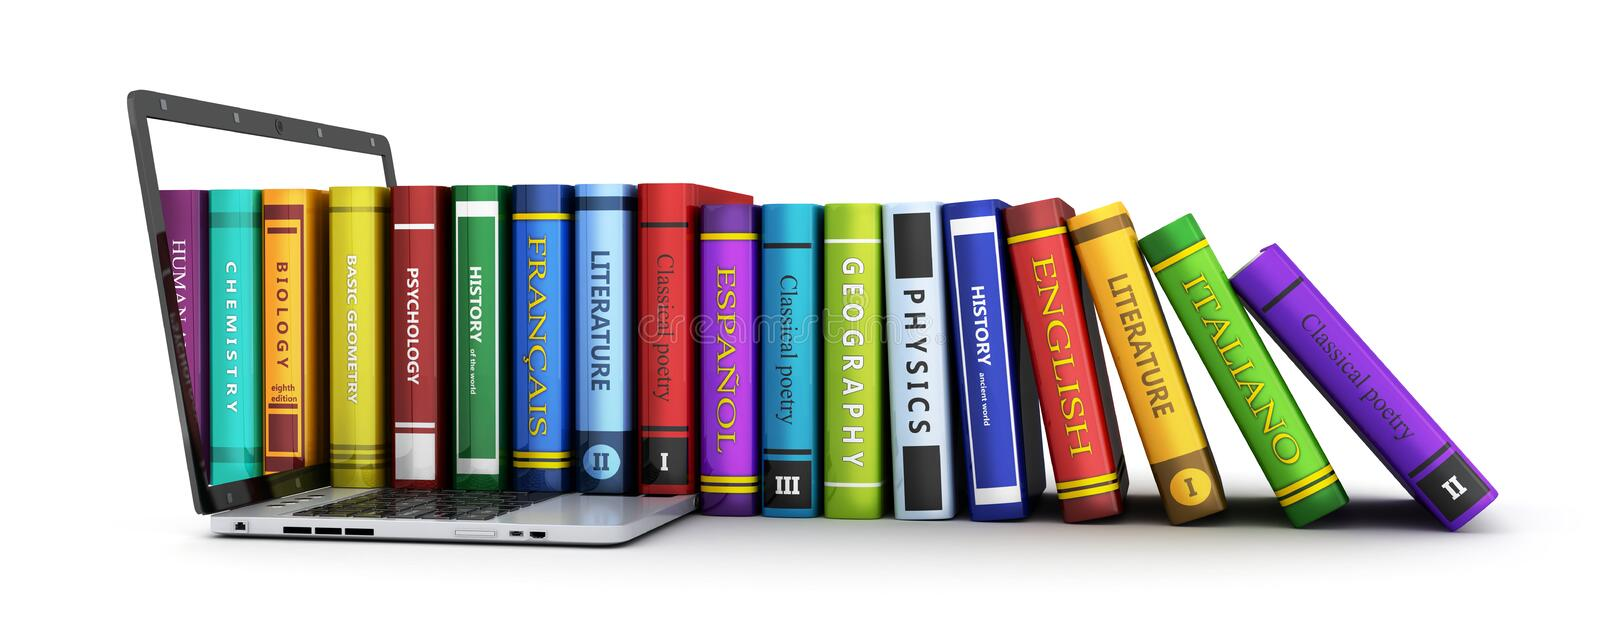 Laptop and many book row vector illustration